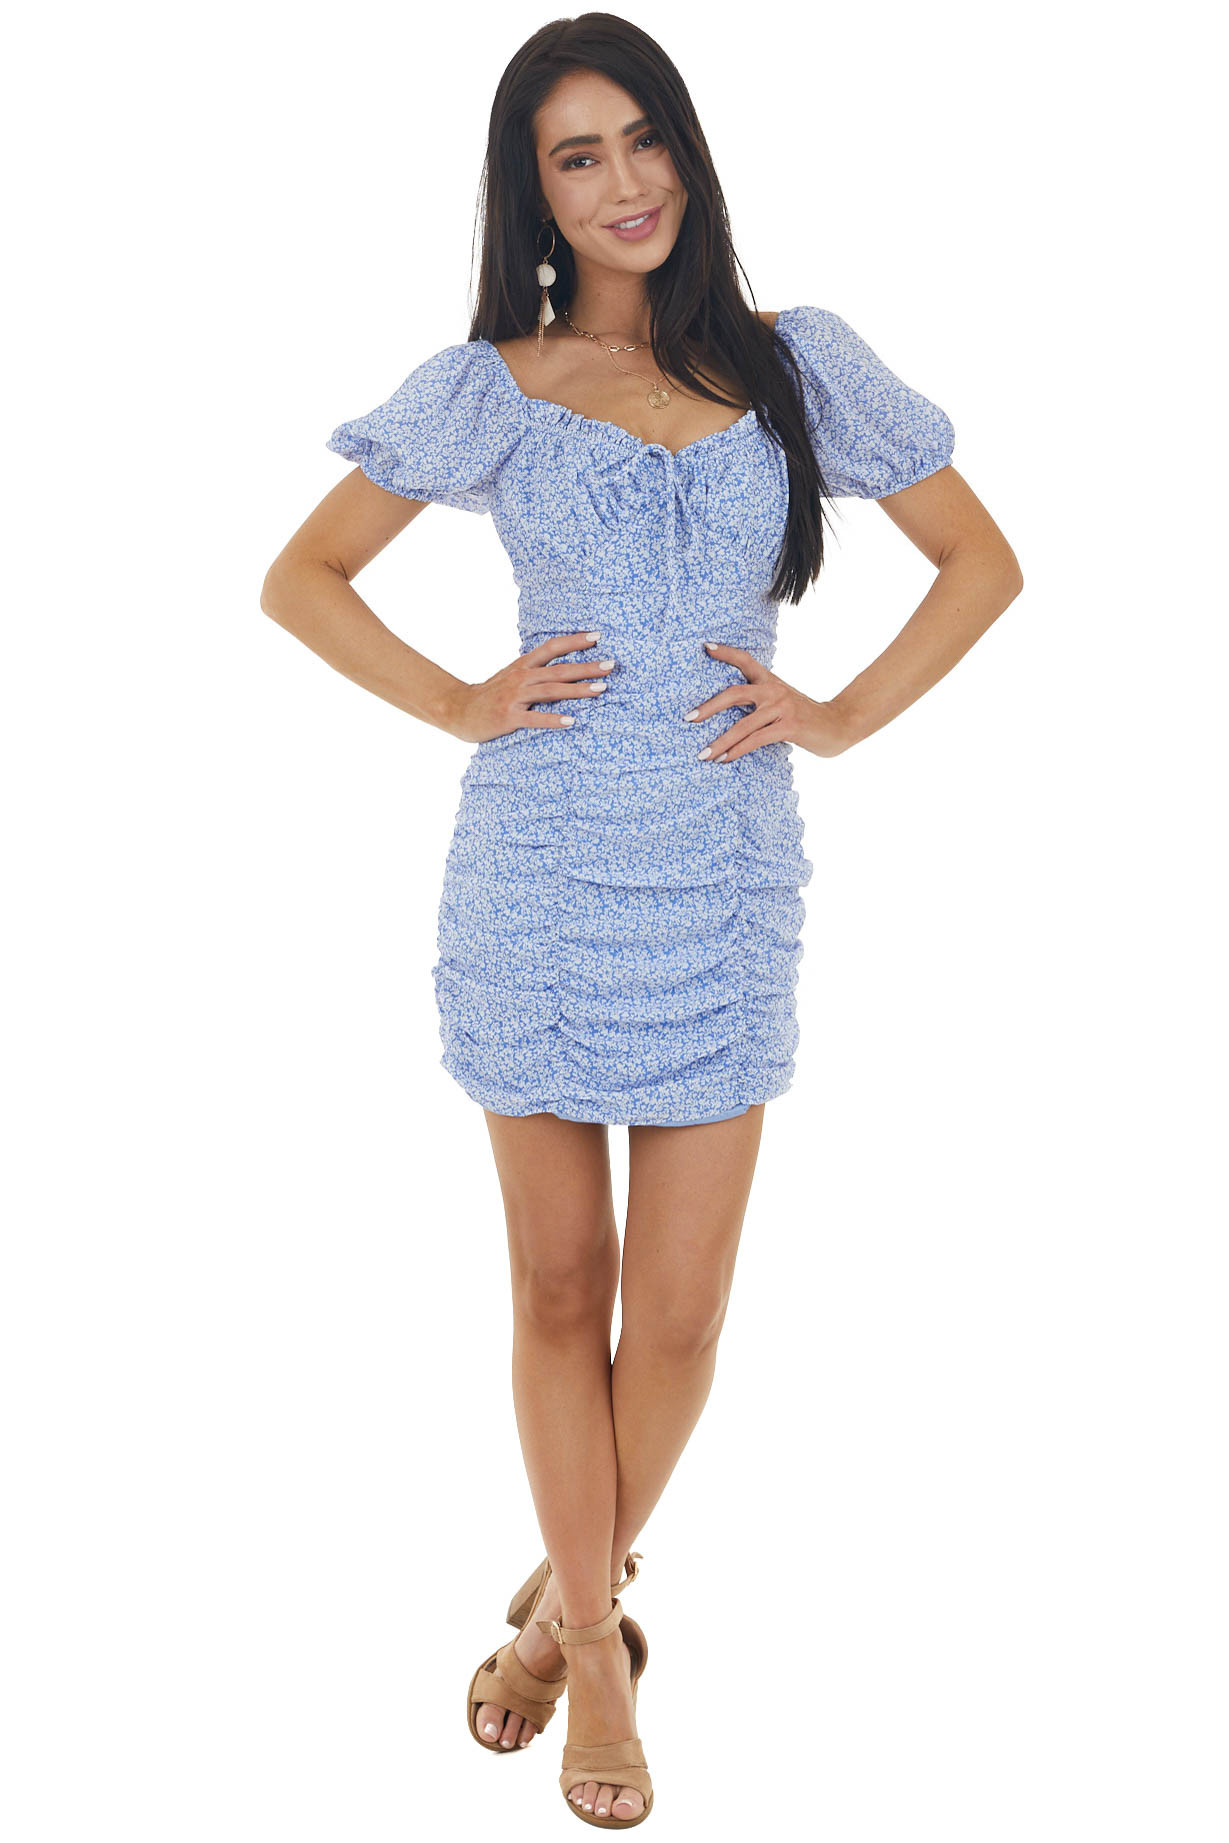 Dusty Blue and Eggshell Ditsy Floral Print Mini Ruched Dress